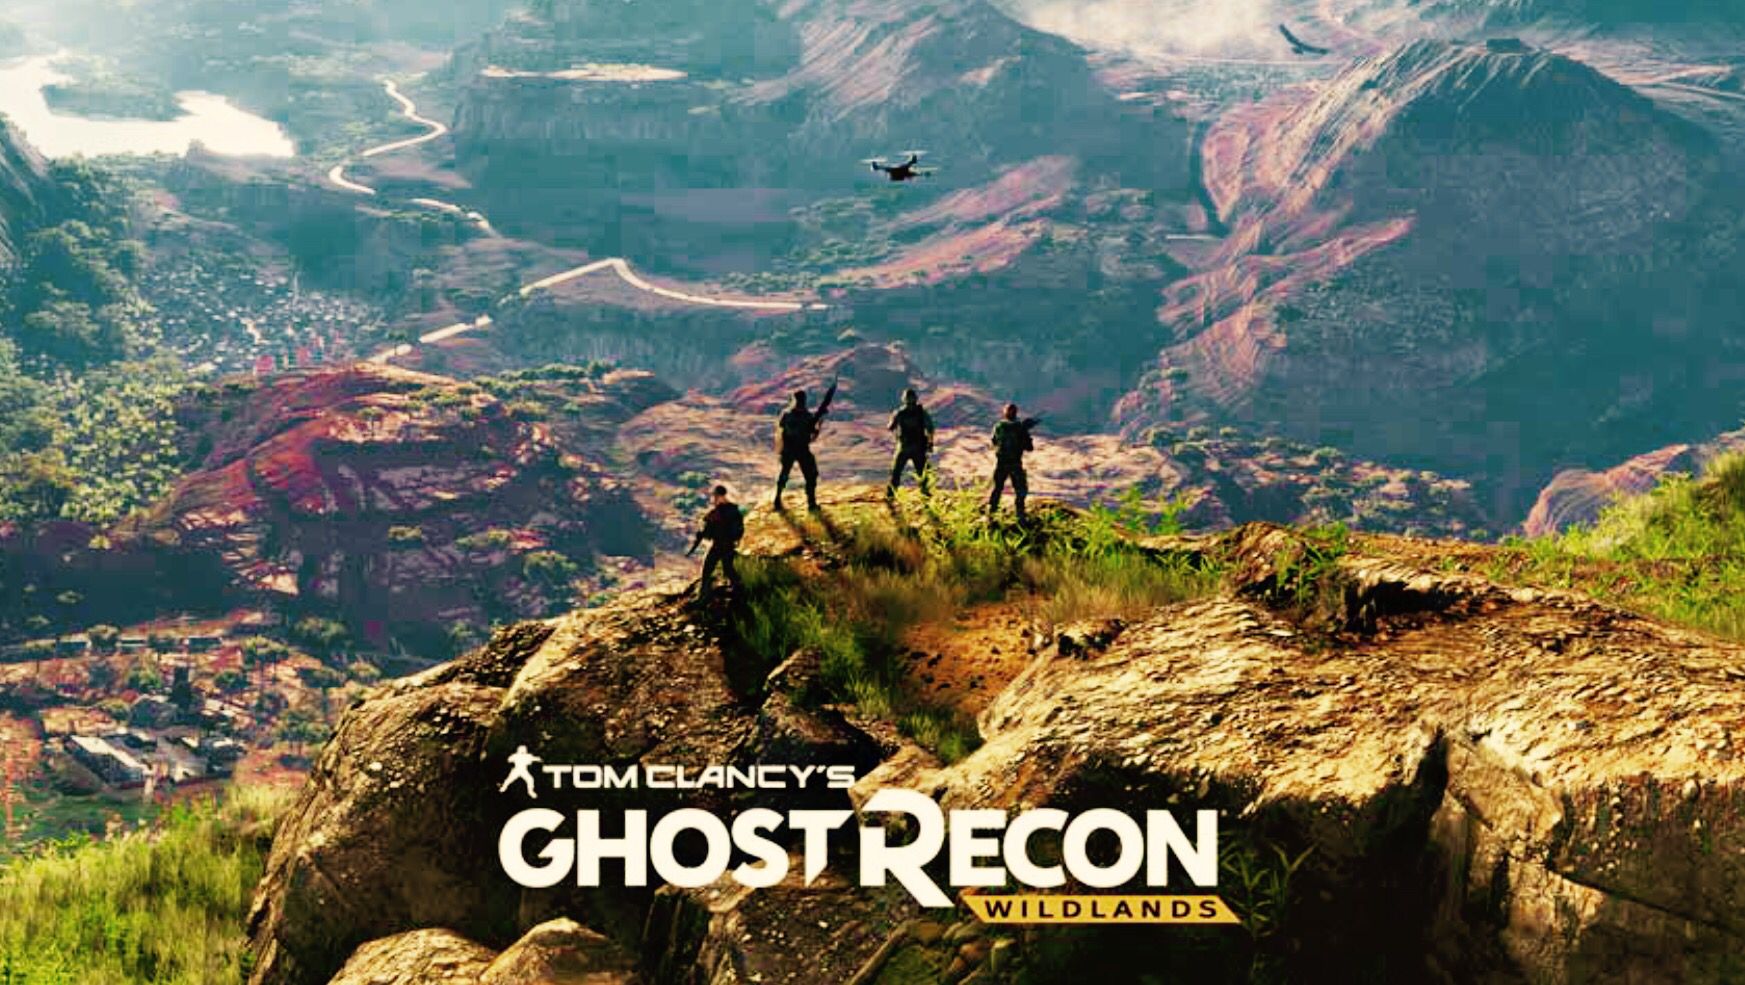 just cause 1 map with Ghost Recon Wildlands on 1832693 Better Skyline Cincinnati Vs Minneapolis in addition 317736 together with 1638855 Ls6 Intake Repair Advice Please Help further Avatar The Last Airbender Map 159051005 likewise 190518 Where Refill Co2 Cylinders Bern.